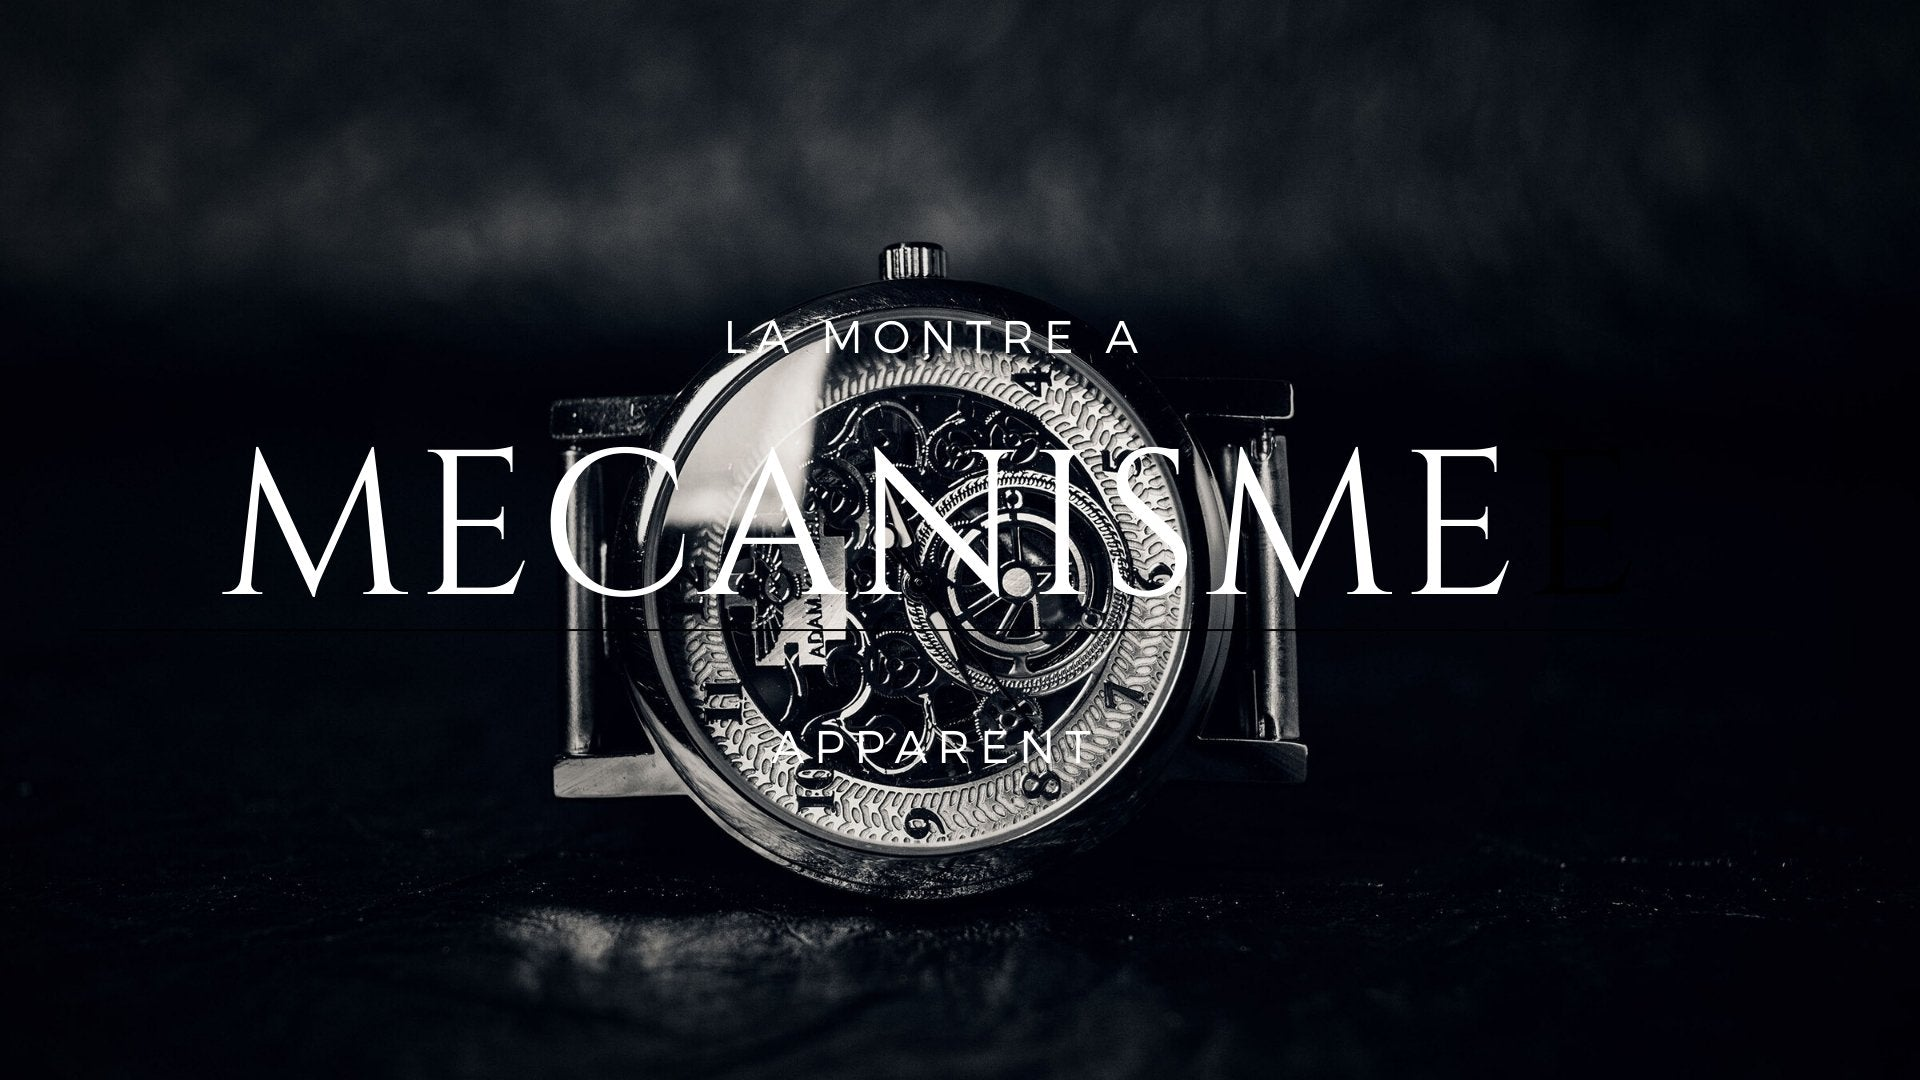 La Montre à Mécanisme Apparent